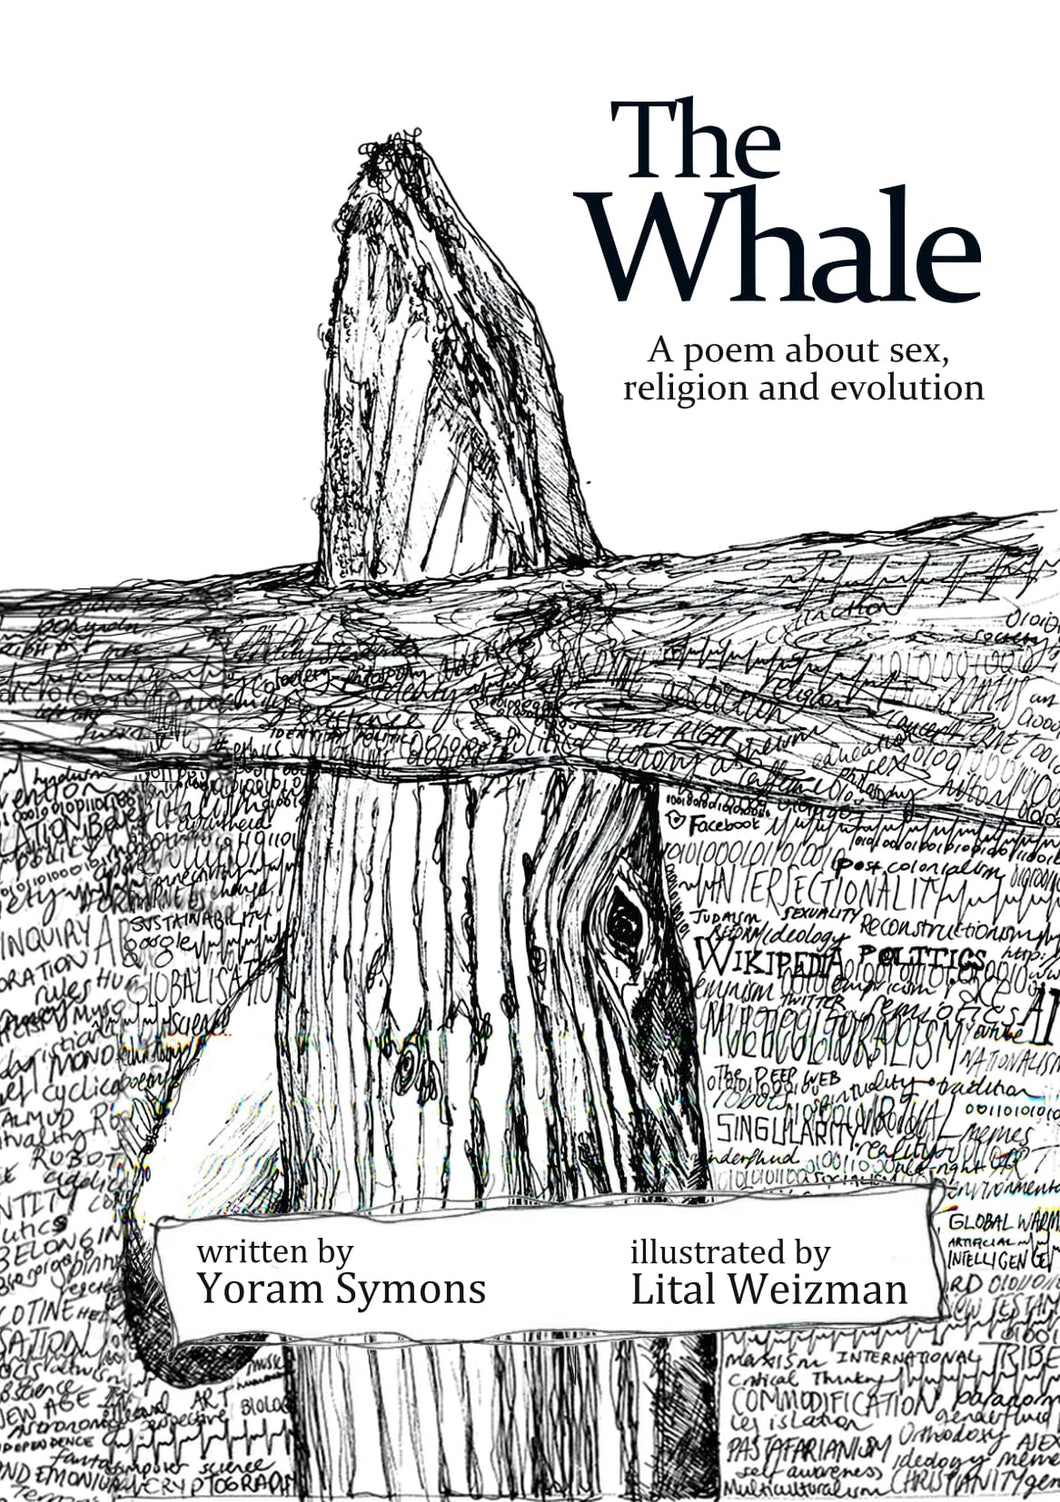 Yoram Symons / The Whale: A poem about sex, religion and evolution